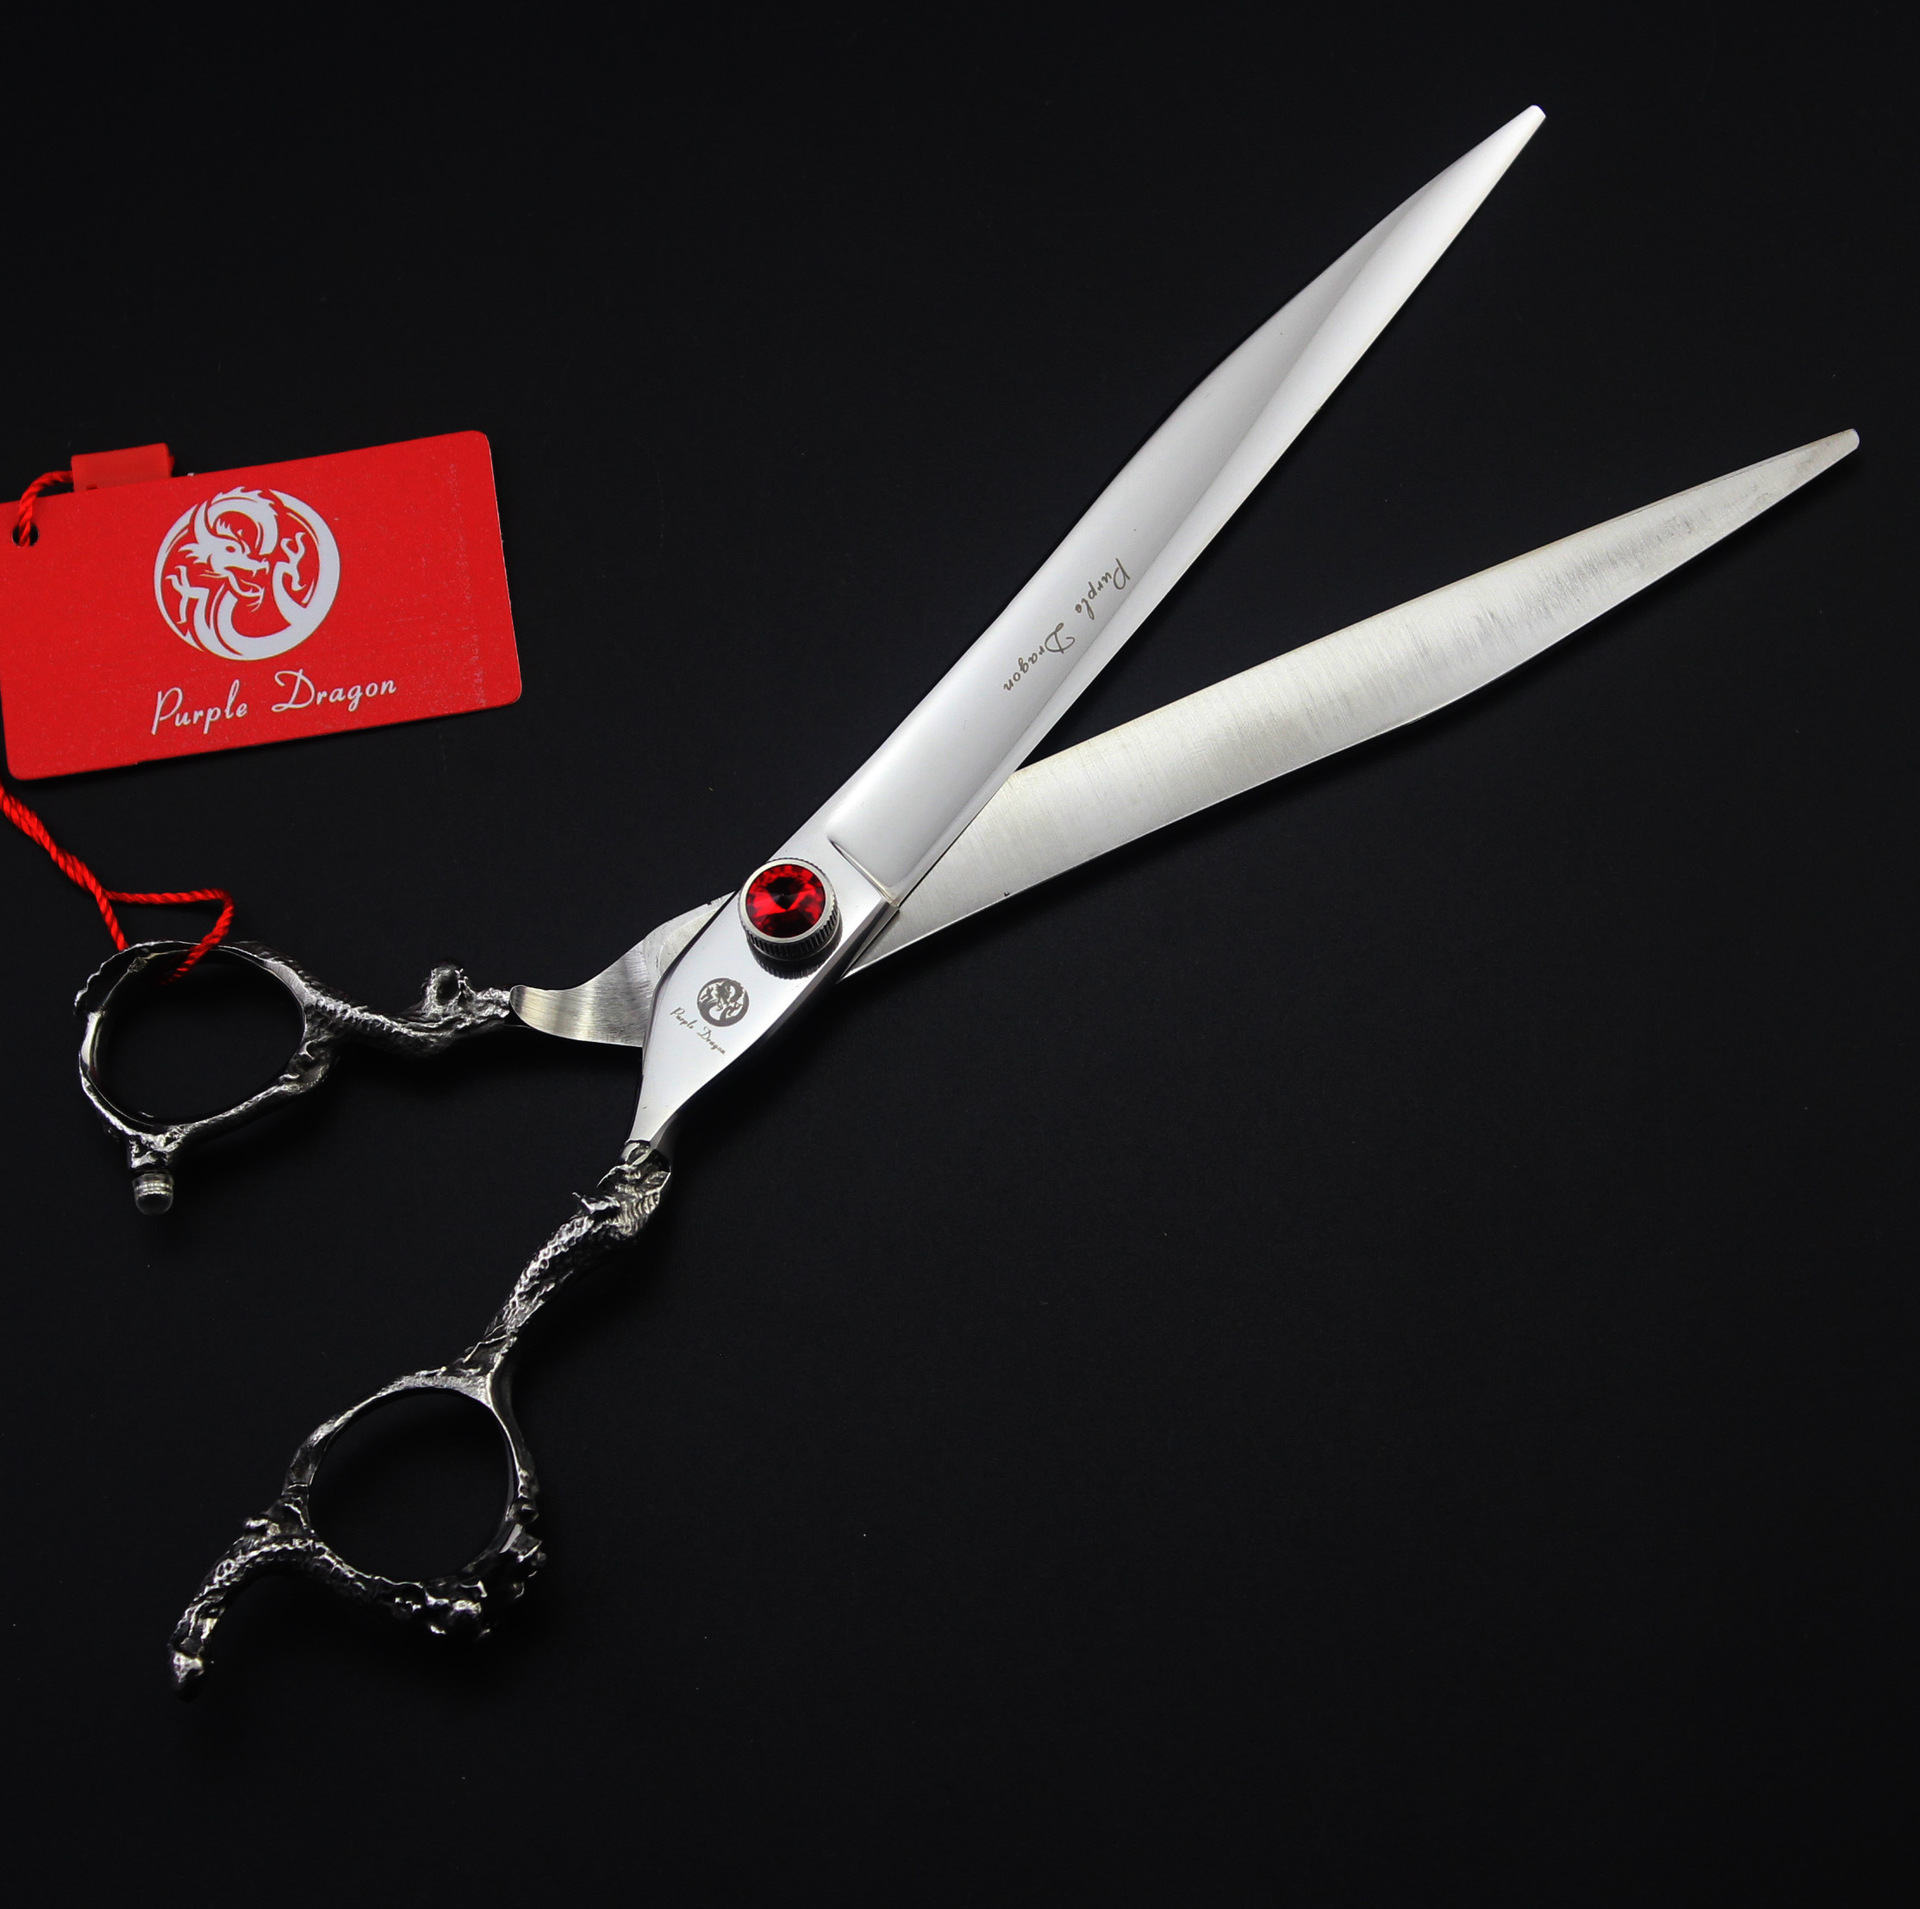 440C: 8 inch long handle imports of high-end professional pet beauty scissors scissors to send packets